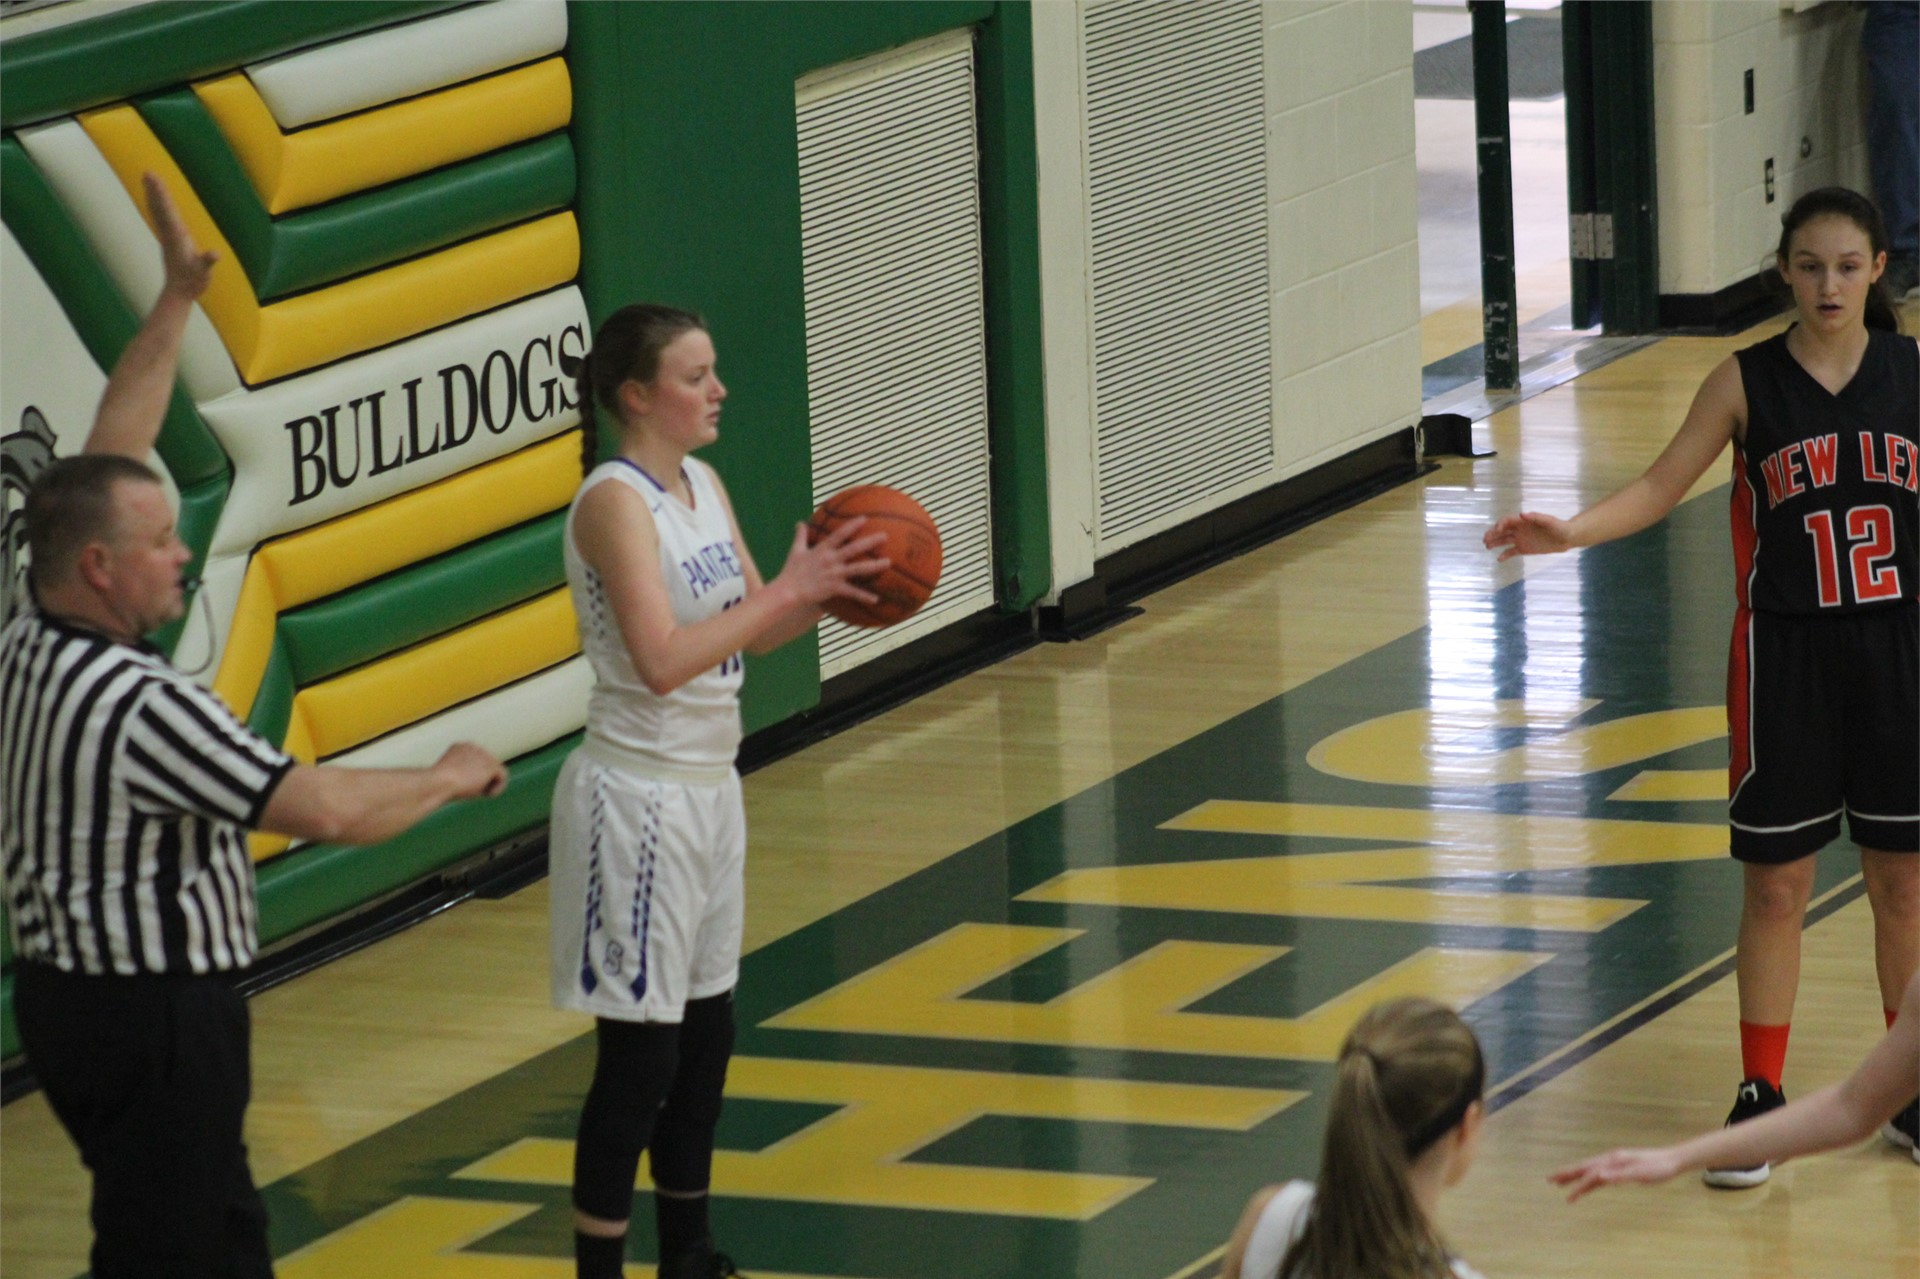 new lexington girls The new lexington varsity girls basketball team has a new coach for the upcoming season jay chadwell, former georgetown high school standout and head coach at logan high school, will be the new head of the girls team this winter.